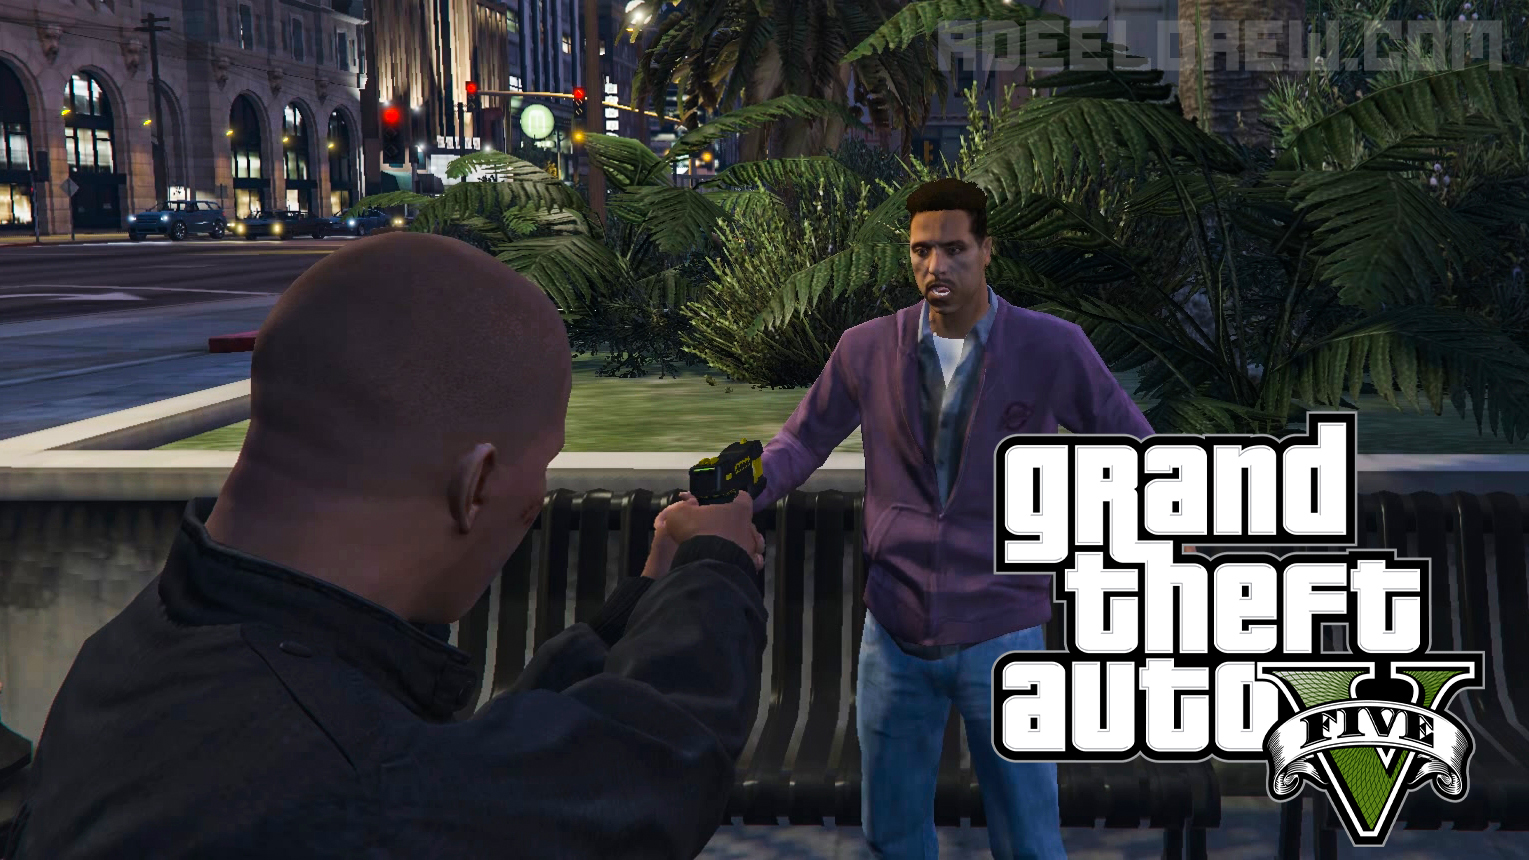 How to Install Low Life Crime Mode in GTA 5 (Rob Peoples by Pointing a Gun on them to Get Money) GTA 5 Modes - AdeelDrew gta 5 mods gta 5 mods pc gta 5 mods xbox one gta 5 modest pelican gta 5 modest menu not working gta 5 modest menu gta 5 mods ps4 gta 5 mods ps4 free gta 5 mods ps4 offline gta 5 mods pc online gta 5 mods nexus gta 5 mods download gta 5 modded account gta 5 mods apk gta 5 adversary modes gta 5 aiming modes all gta 5 mods gta v adversary modes all gta v mods gta 5 modes crazy4 android best gta 5 mods gta 5 boost mode ps4 pro gta 5 beast mode gta 5 bike mod gta 5 bigfoot mode gta 5 bus mod gta 5 build mode gta 5 best mod menu gta 5 cars mods gta 5 cheat codes gta 5 custom modes gta 5 cop mods gta v cheat codes gta 5 independent camera modes how to get mods on gta 5 on pc can you mod gta 5 on pc how to add mods on gta 5 pc gta 5 mods download ps4 gta 5 mods donk gta 5 mods dodge challenger gta 5 mods drag cars gta 5 mods drag race gta 5 mods don't work gta 5 mods drug dealer gta 5 mods d gta 5 mods epic games gta 5 mods epic games reddit gta 5 mods eup gta 5 mods easy install gta 5 mods enb gta 5 mods els gta 5 mods enhanced native trainer gta 5 mods euphoria e-mastersensei gta 5 mods e mastersensei gta 5 mods de terror e mastersensei gta 5 mods desastres naturales gta 5 mods for ps4 gta 5 mods for xbox one gta 5 mods for pc gta 5 mods folder gta 5 mods free gta 5 mods for xbox 360 gta 5 mods for ps3 gta 5 mods fivem gta 5 mods f-15 gta 5 mods f-16 gta 5 mods graphics gta 5 mods game gta 5 mods guide gta 5 mods gameconfig gta 5 mods glock 17 gta 5 mods gameplay gta 5 mods god mode gta 5 mods godzilla g gta 5 mods gta 5 mods g wagon gta 5 mods in hindi gta 5 casino heist modes gta 5 how to host modes gta 5 halloween game modes how to get mods in gta 5 how to install mods in gta 5 how to get mods on gta 5 ps4 gta 5 mods install gta 5 mods infinite loading screen gta 5 mods iphone gta 5 mods install pc gta 5 mods interiors gta 5 mods iron man gta 5 mods 